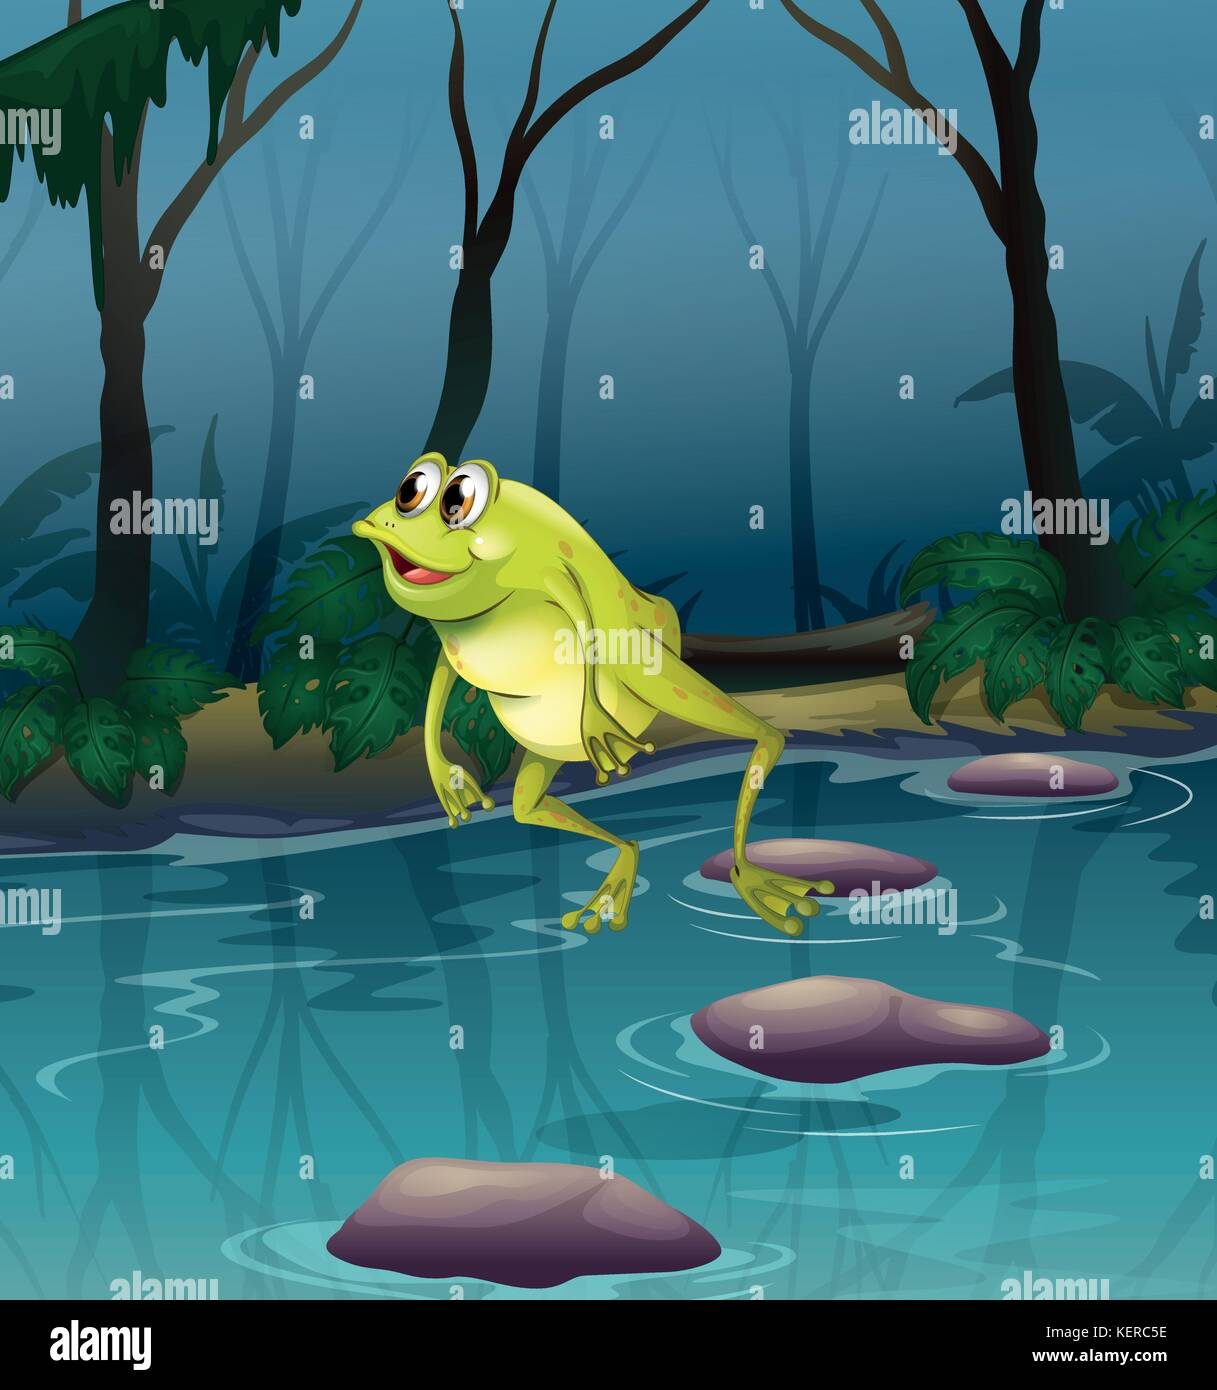 a puzzle on leap frog jumping